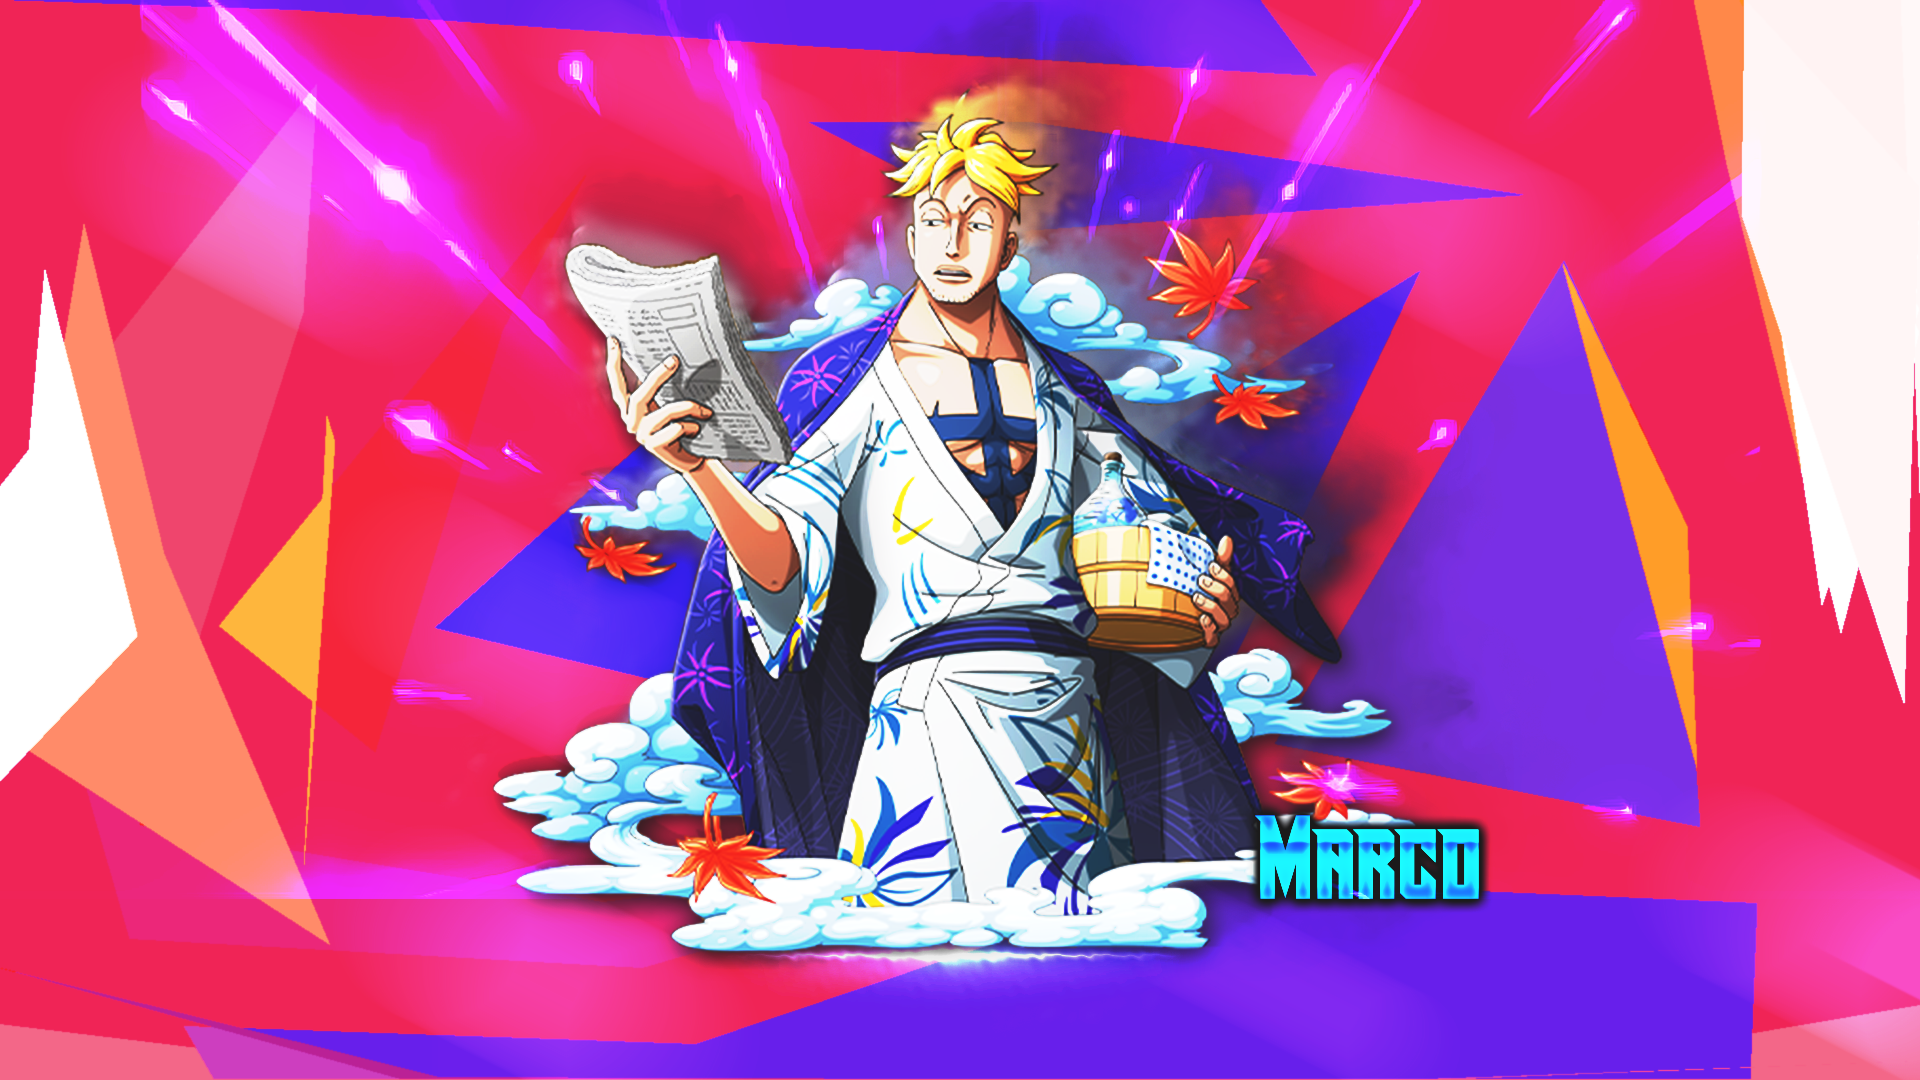 30 Marco One Piece Hd Wallpapers Background Images Wallpaper Abyss